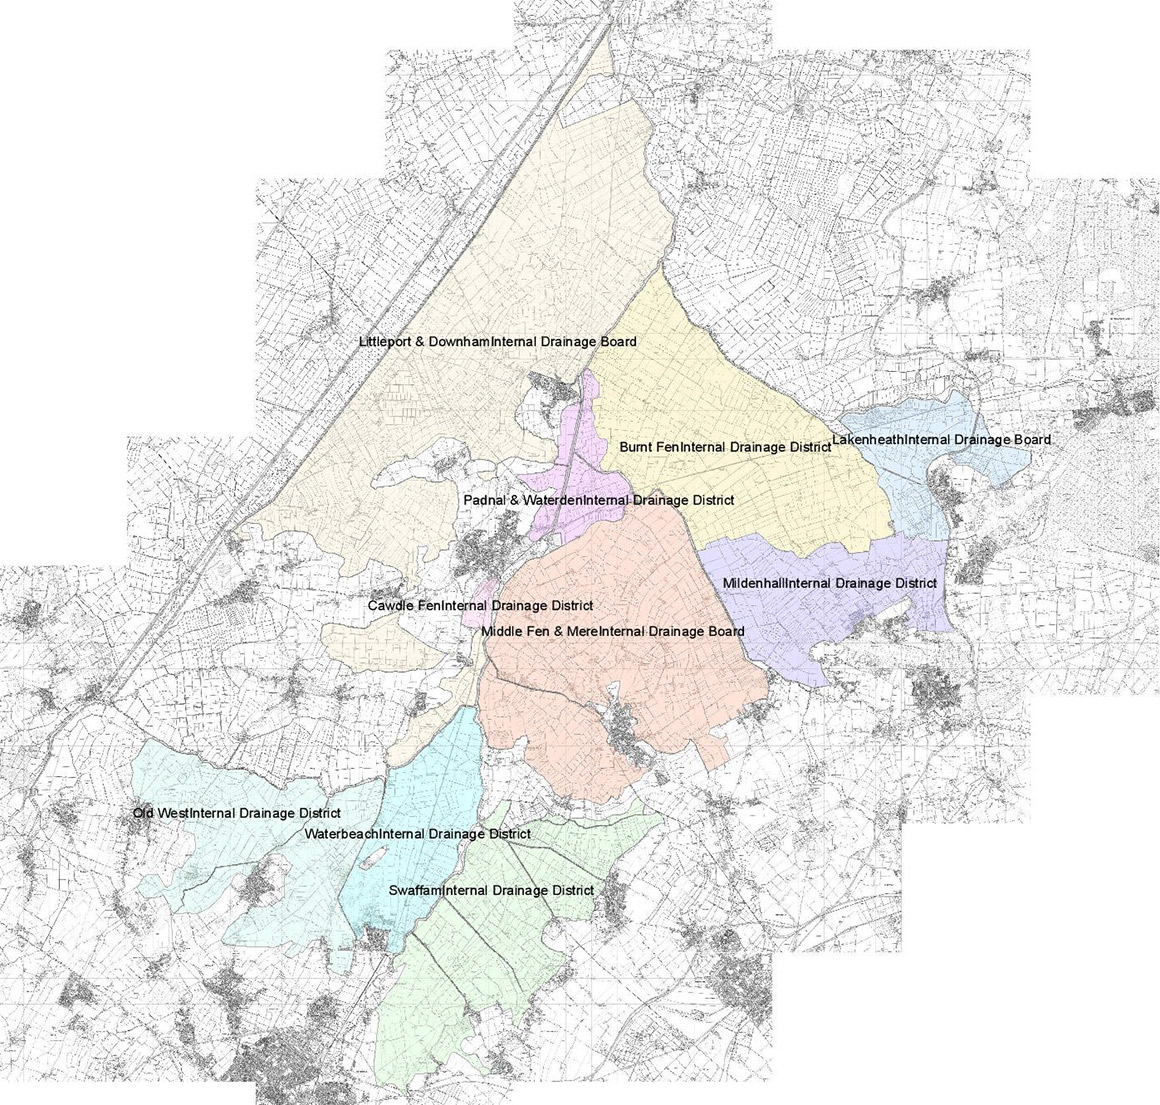 map of whole district